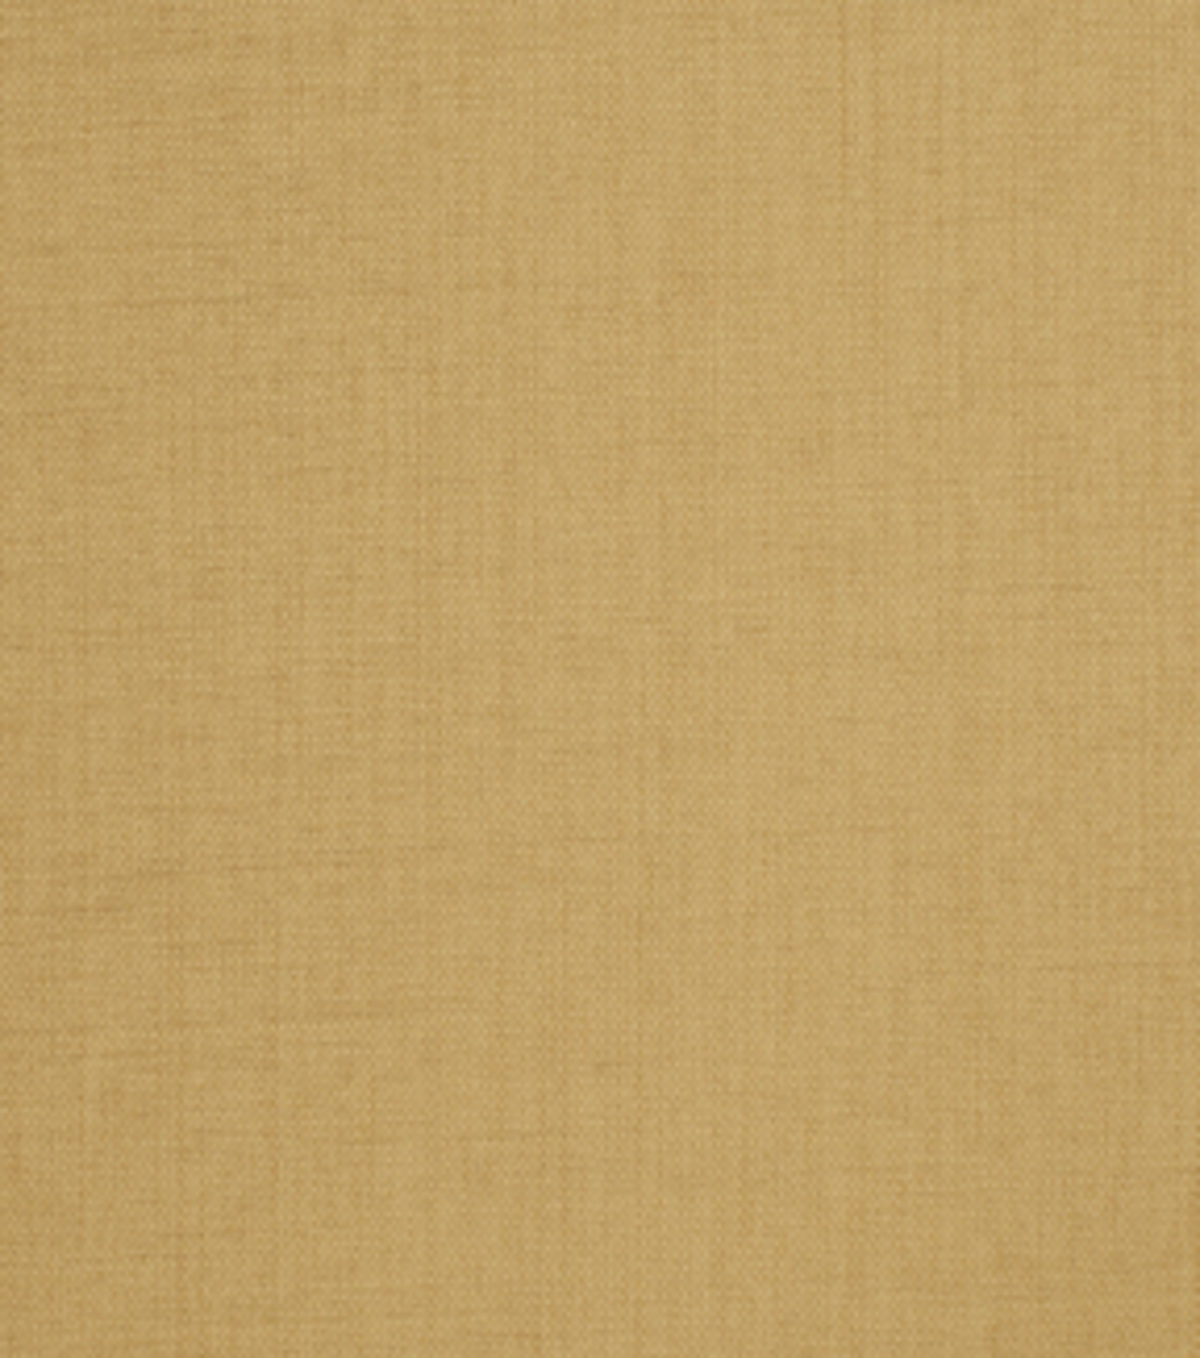 Home Decor 8\u0022x8\u0022 Fabric Swatch-Eaton Square Ring Toss Gold